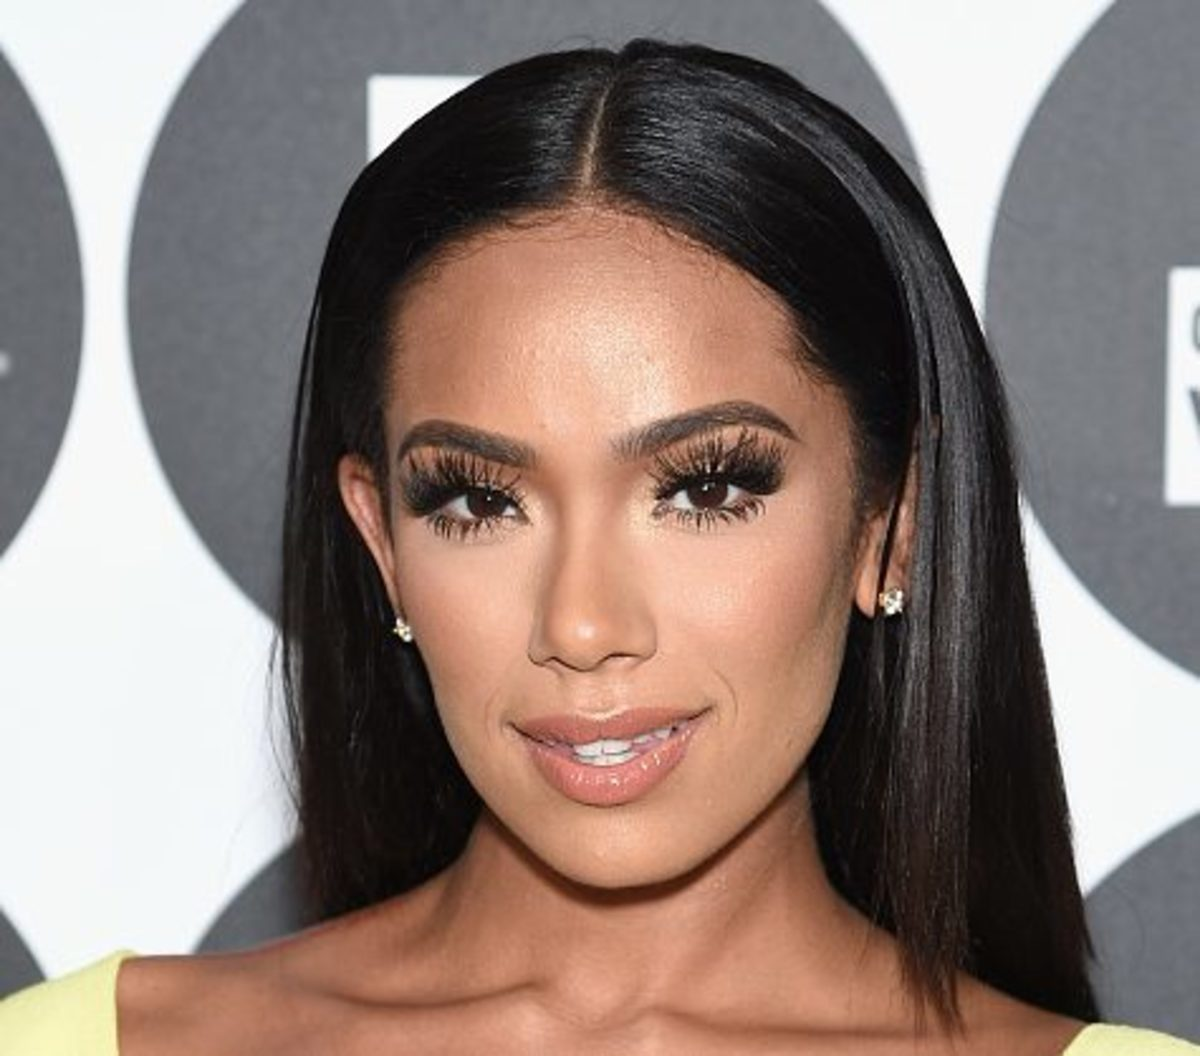 Erica Mena Is Looking For Another Source Of Income